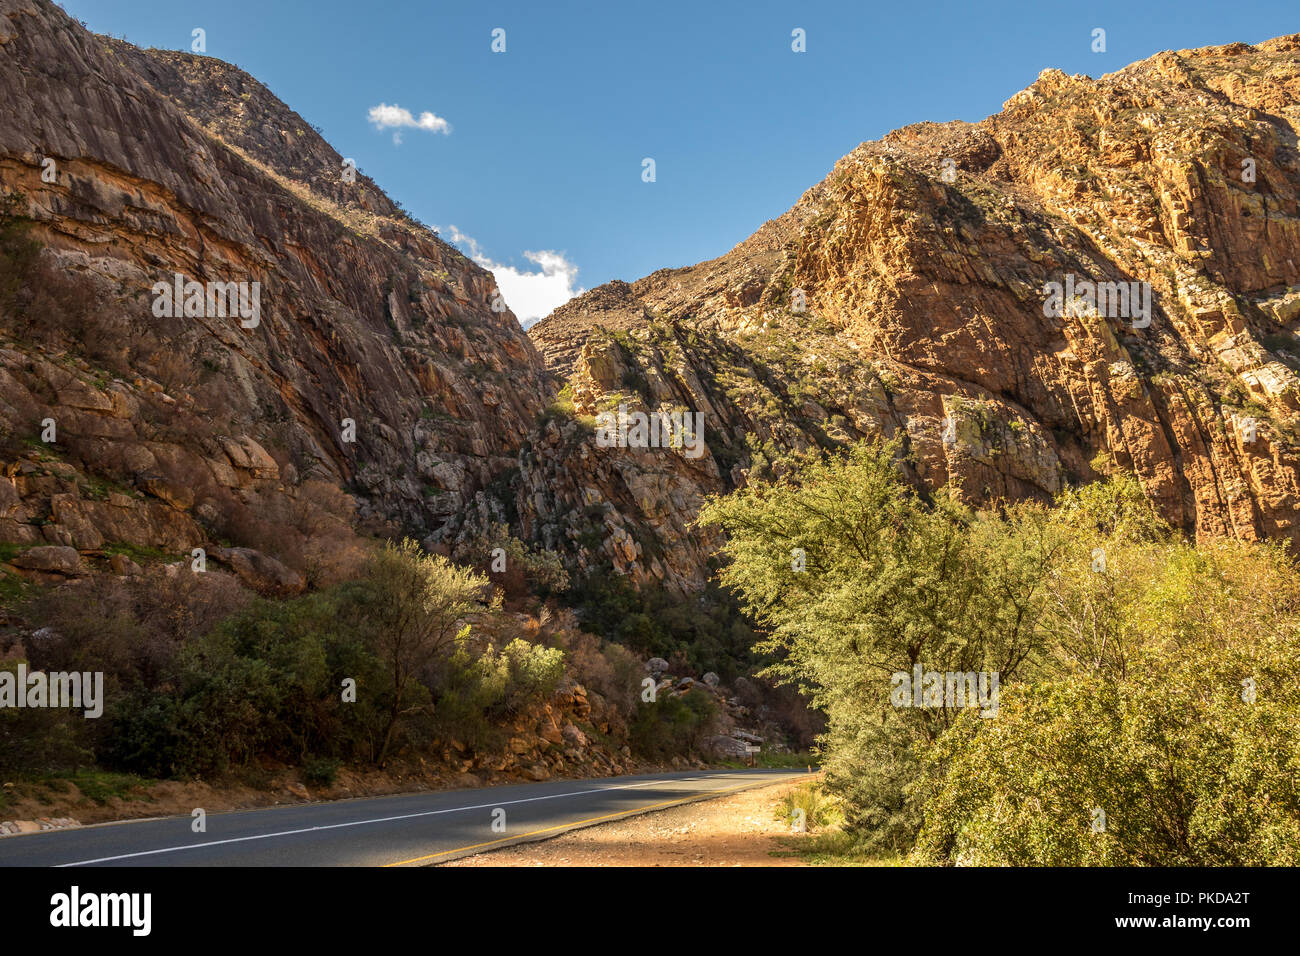 Meiringspoort Pass in the Swartberg mountain range in the klein Karoo region of South Africa image in landscape format - Stock Image